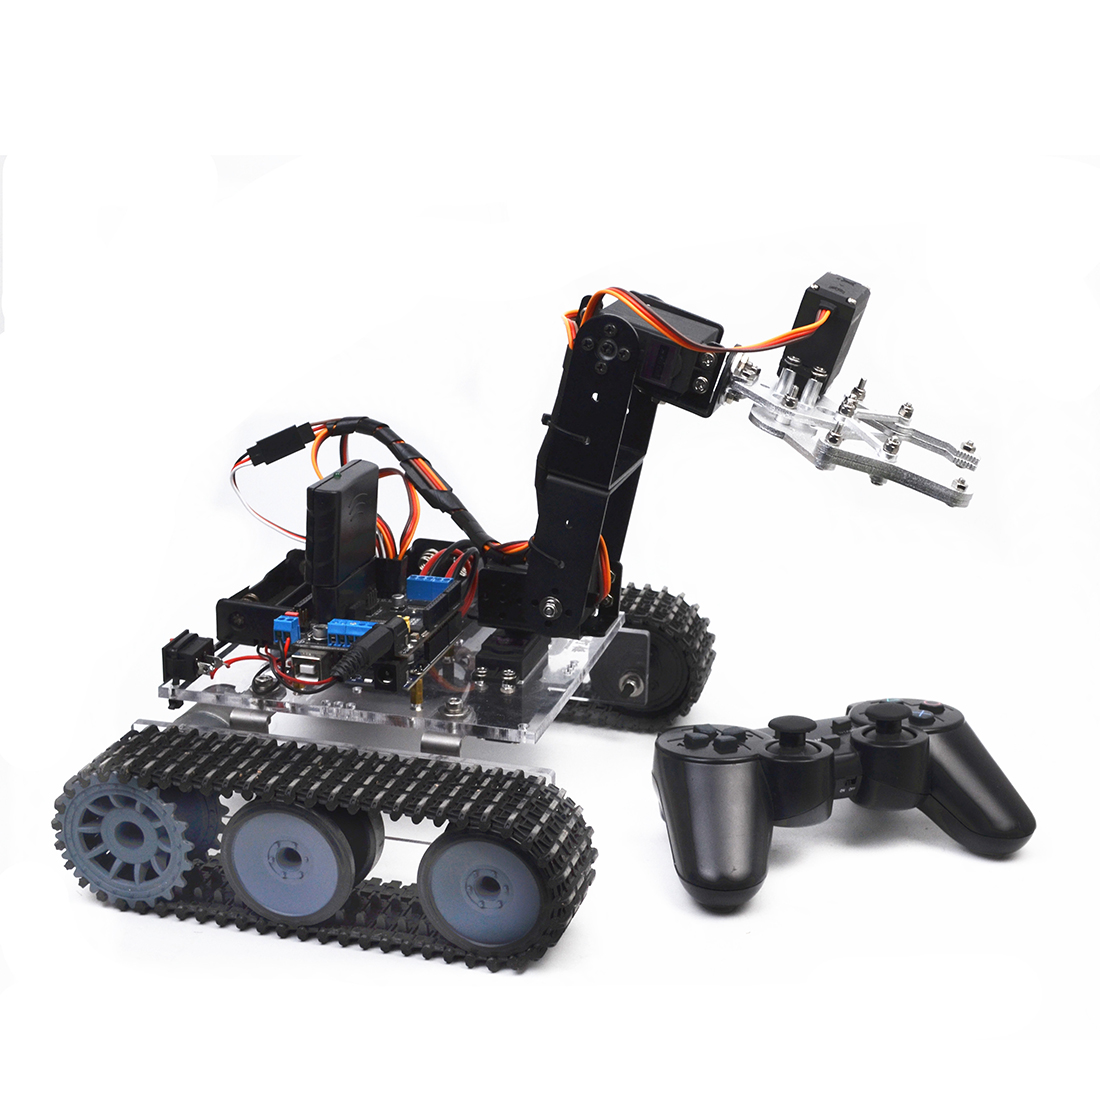 DIY Programmable Tank 4DOF Metal Mechanical Arm Robot Kit (Without Battery) Toys For Kids Children Birthdaty Gifts 2020